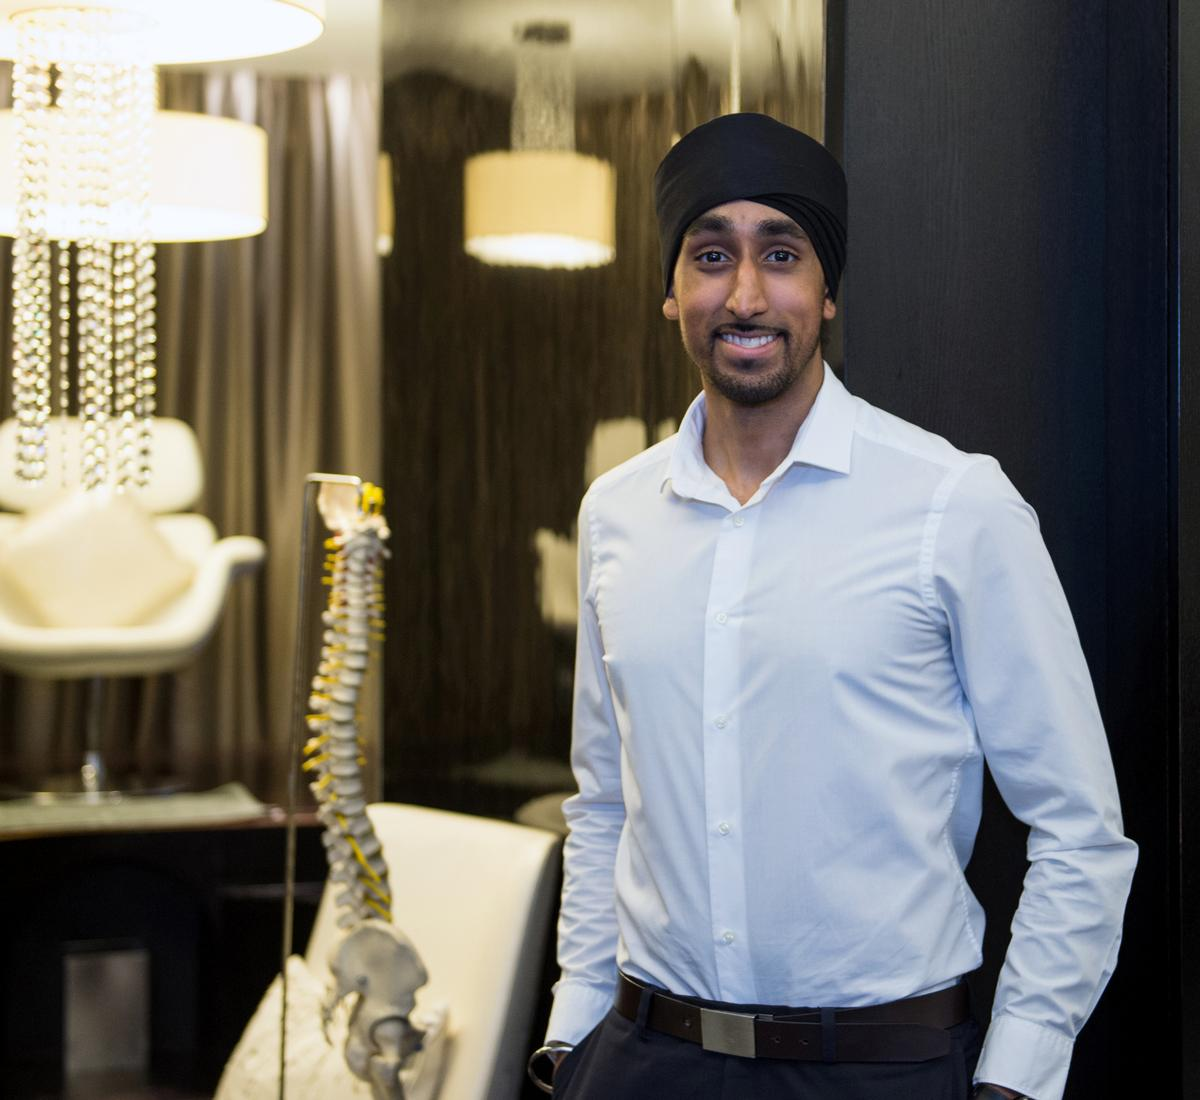 Roopjeet Panesar, one of four new medical massage experts, is a master of osteotherapy and naturotherapy as well as a qualified Kinesio Taping practitioner / ESPA Life at Corinthia